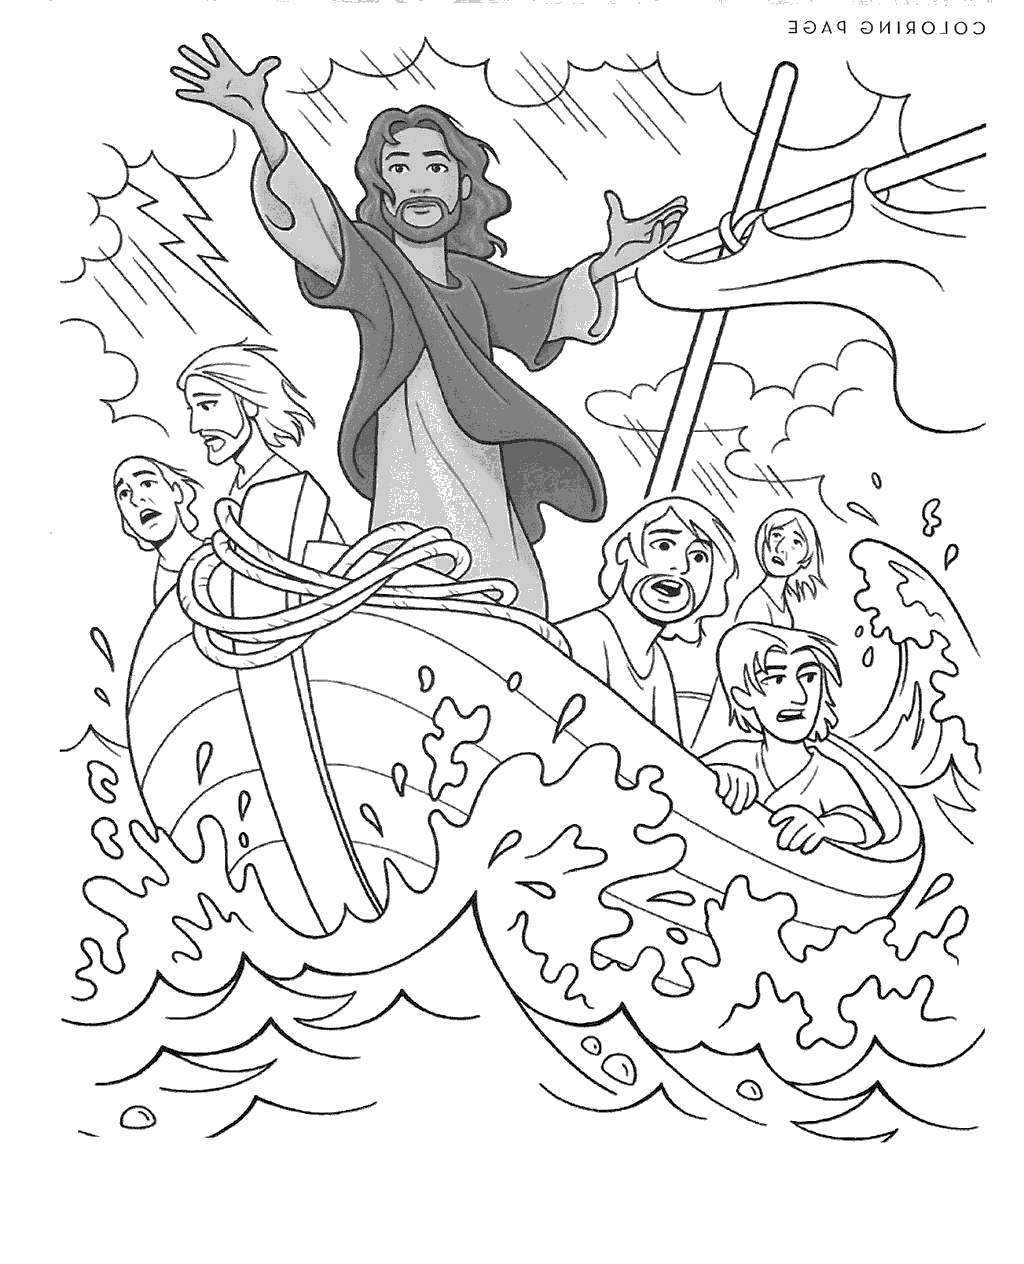 Coloring Pages On Pinterest Jesus Calms The Storm Coloring Pages Pinterest Black And White